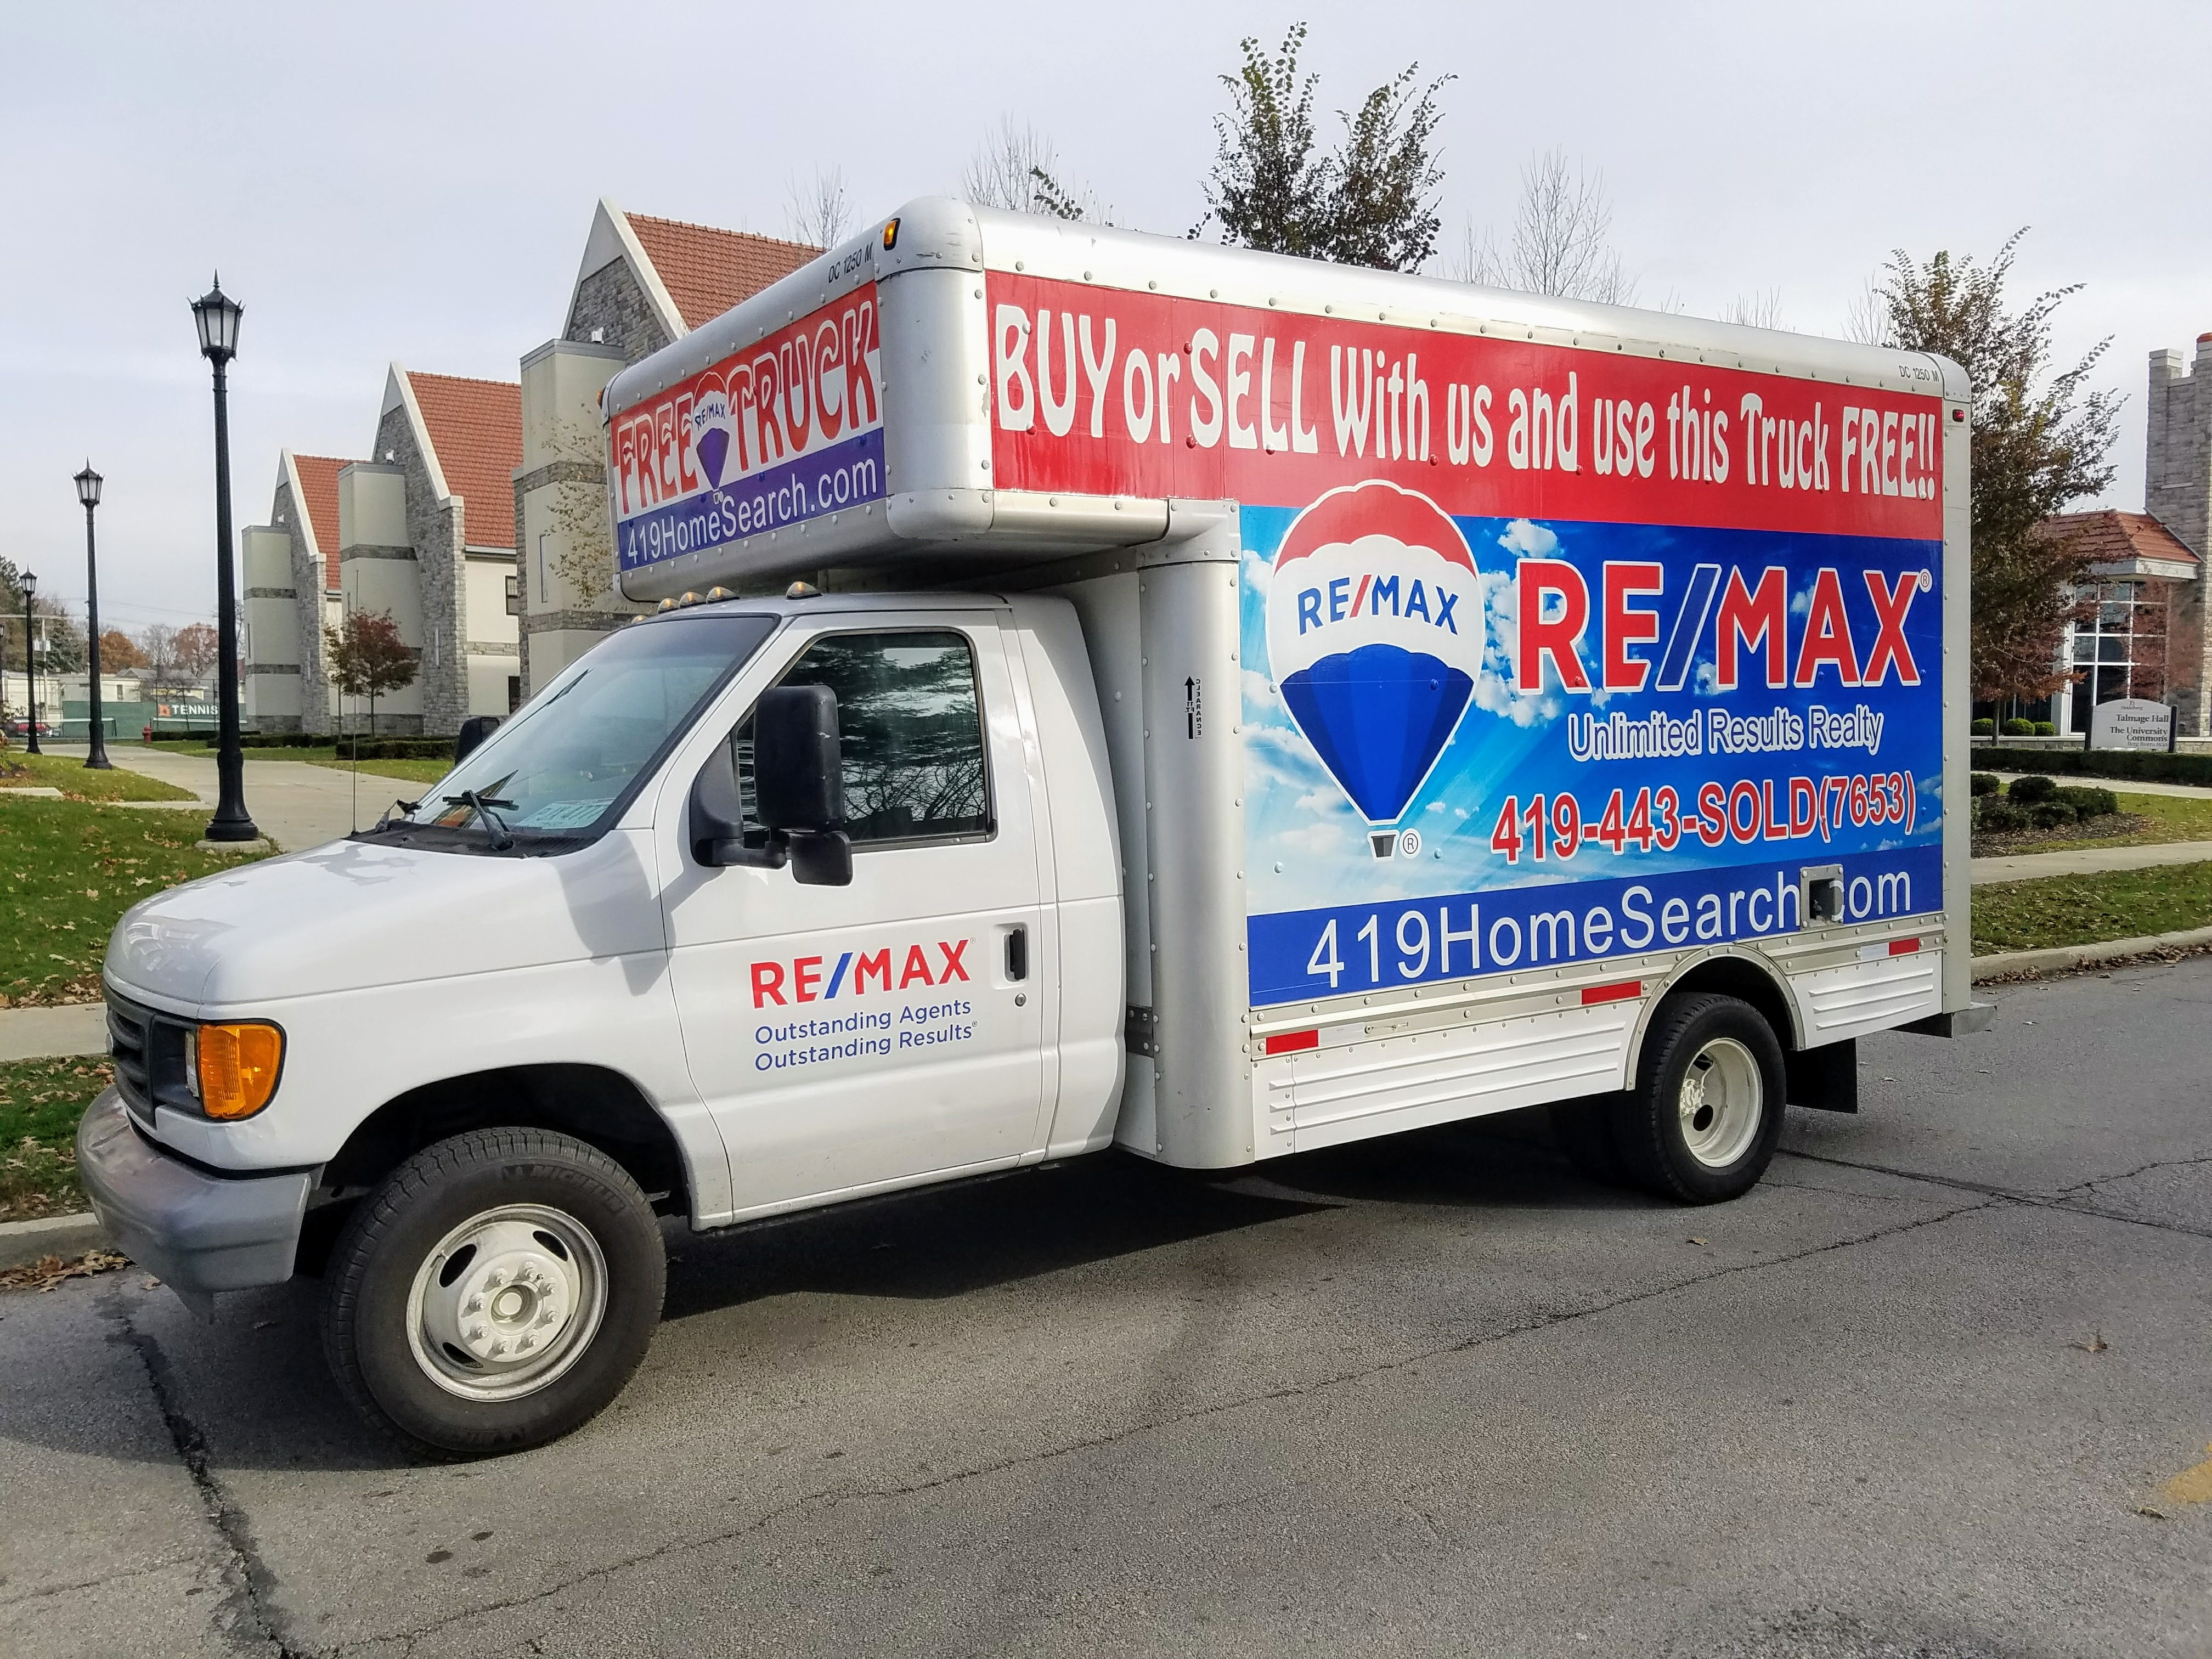 Re Max Unlimited Results Realty Box Truck